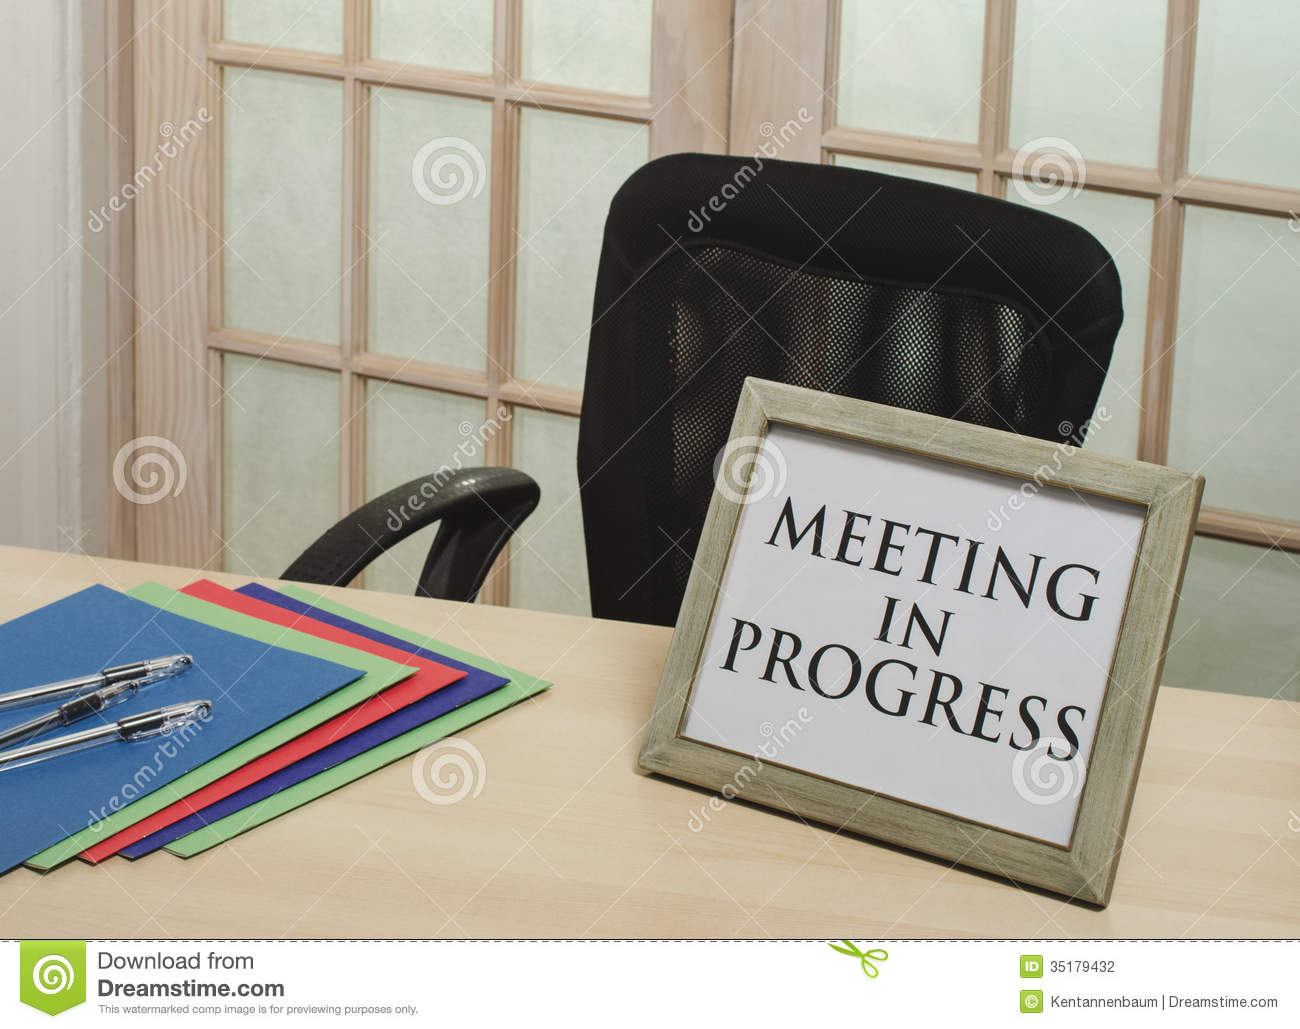 meeting in progress sign stock photo image of door creativity